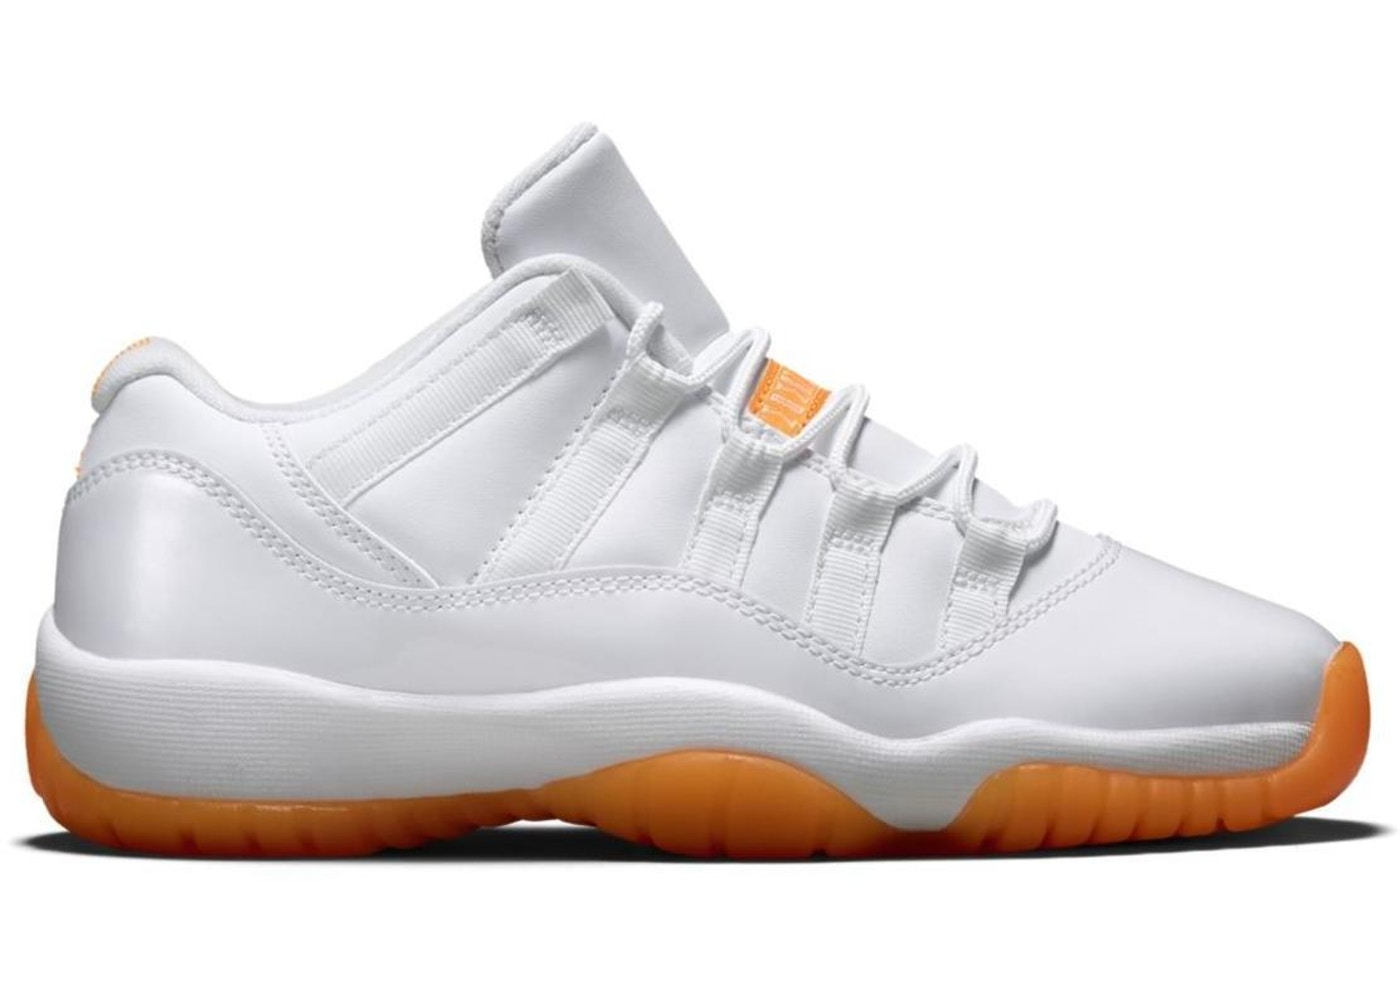 more photos 2fa3e b43e2 Jordan 11 Retro Low Citrus 2015 (GS) - 580521-139